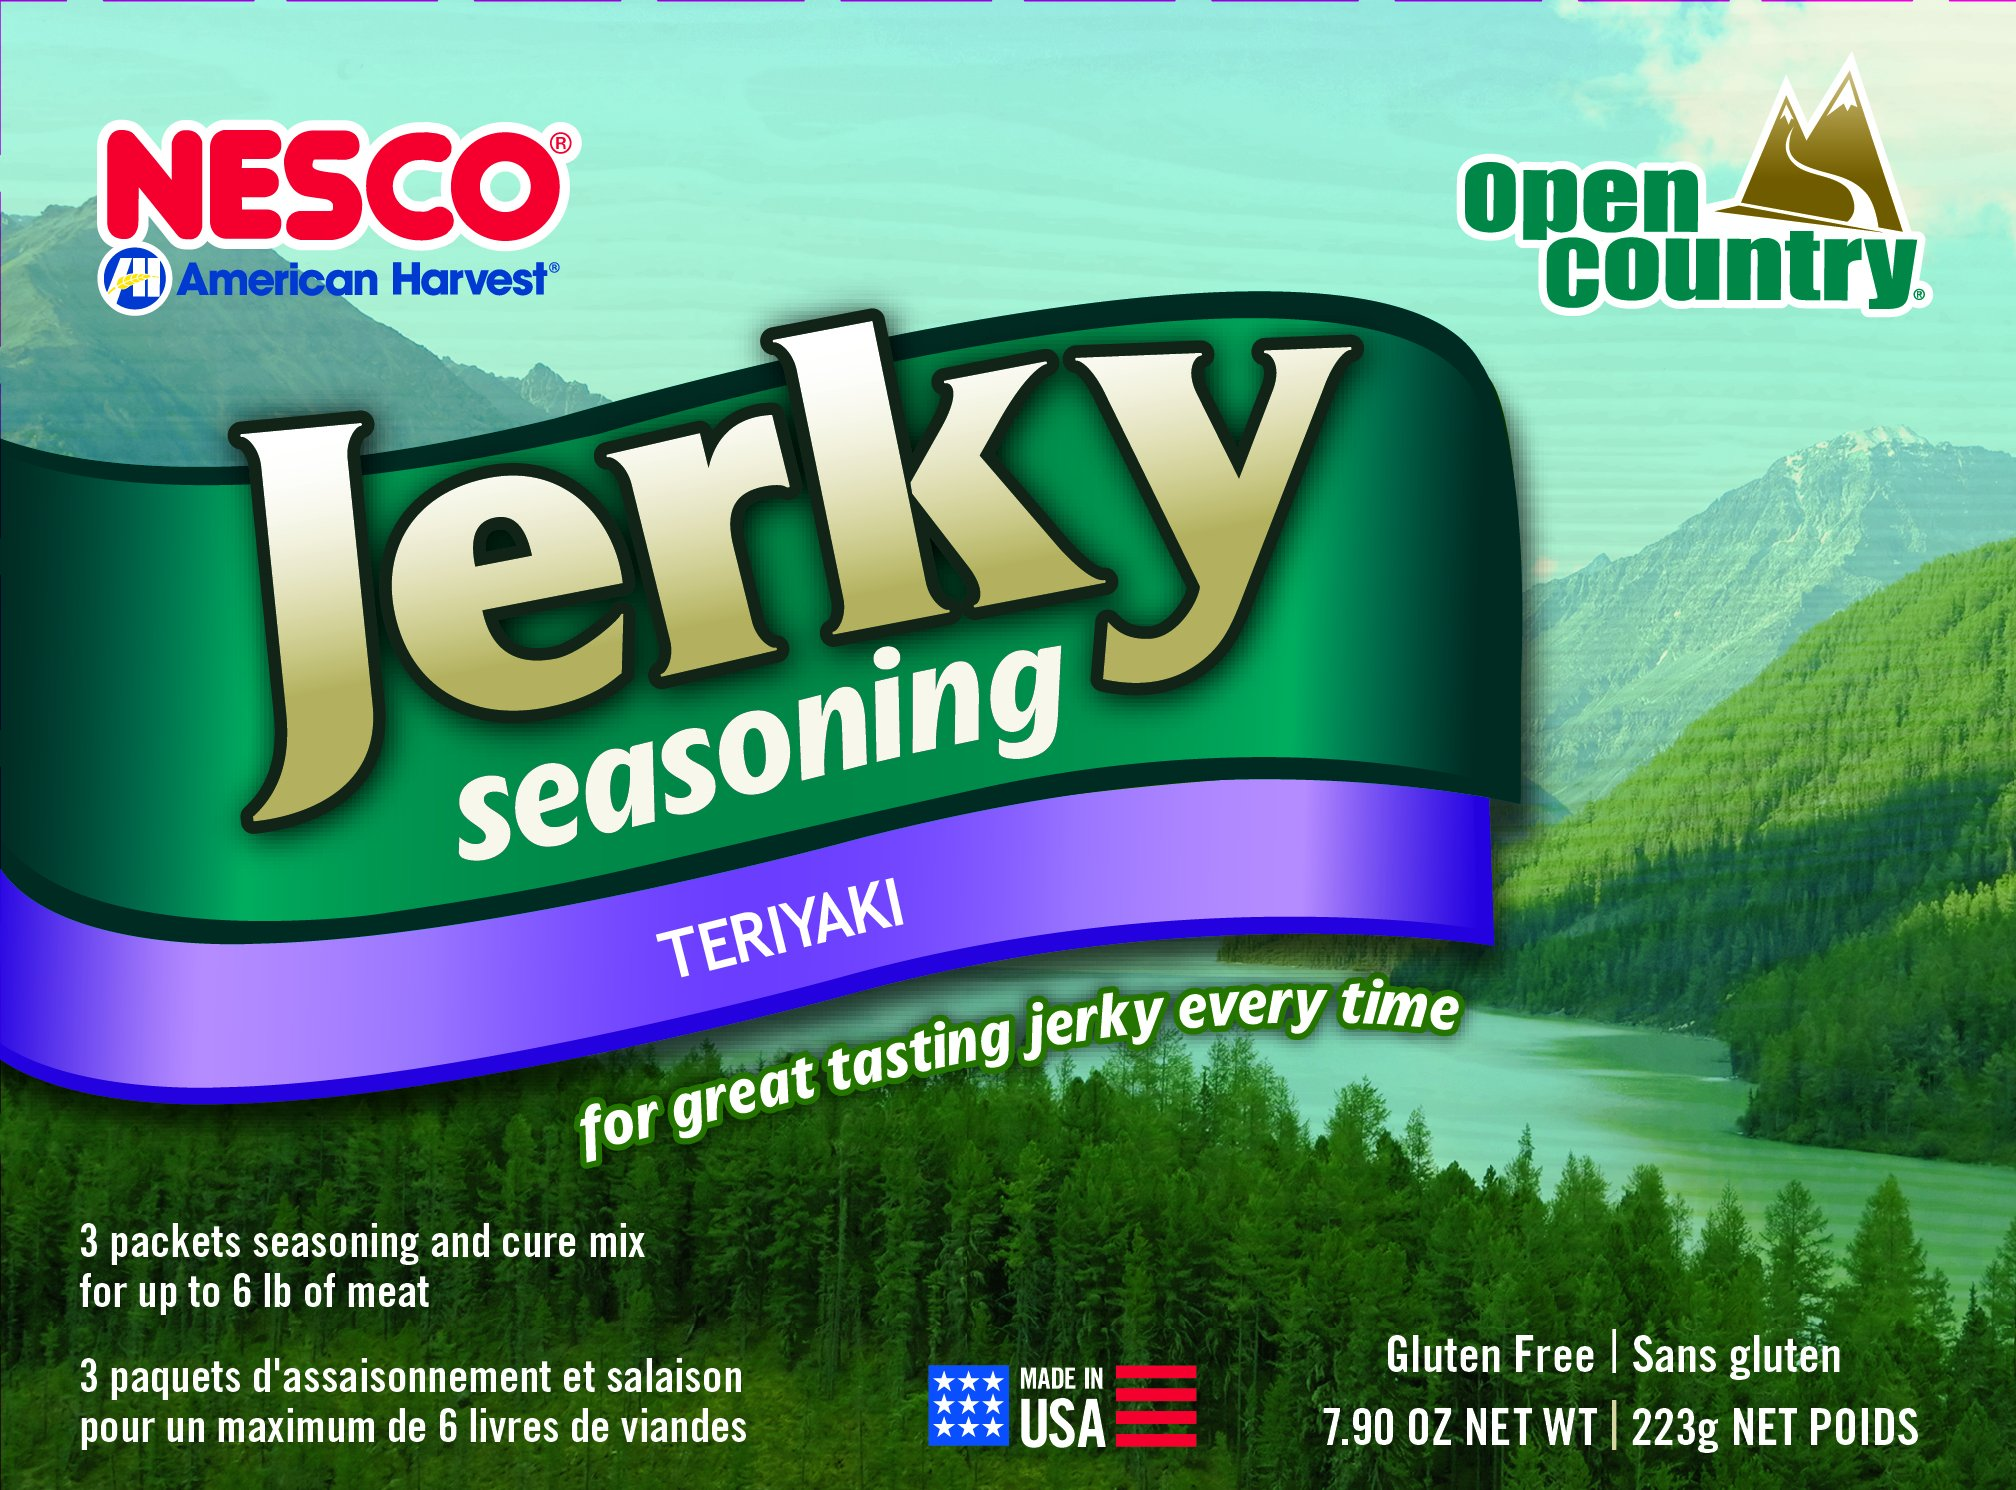 Nesco BJT-6 Jerky Spice Works, Teriyaki Flavor, 6 pack (Packaging may vary)